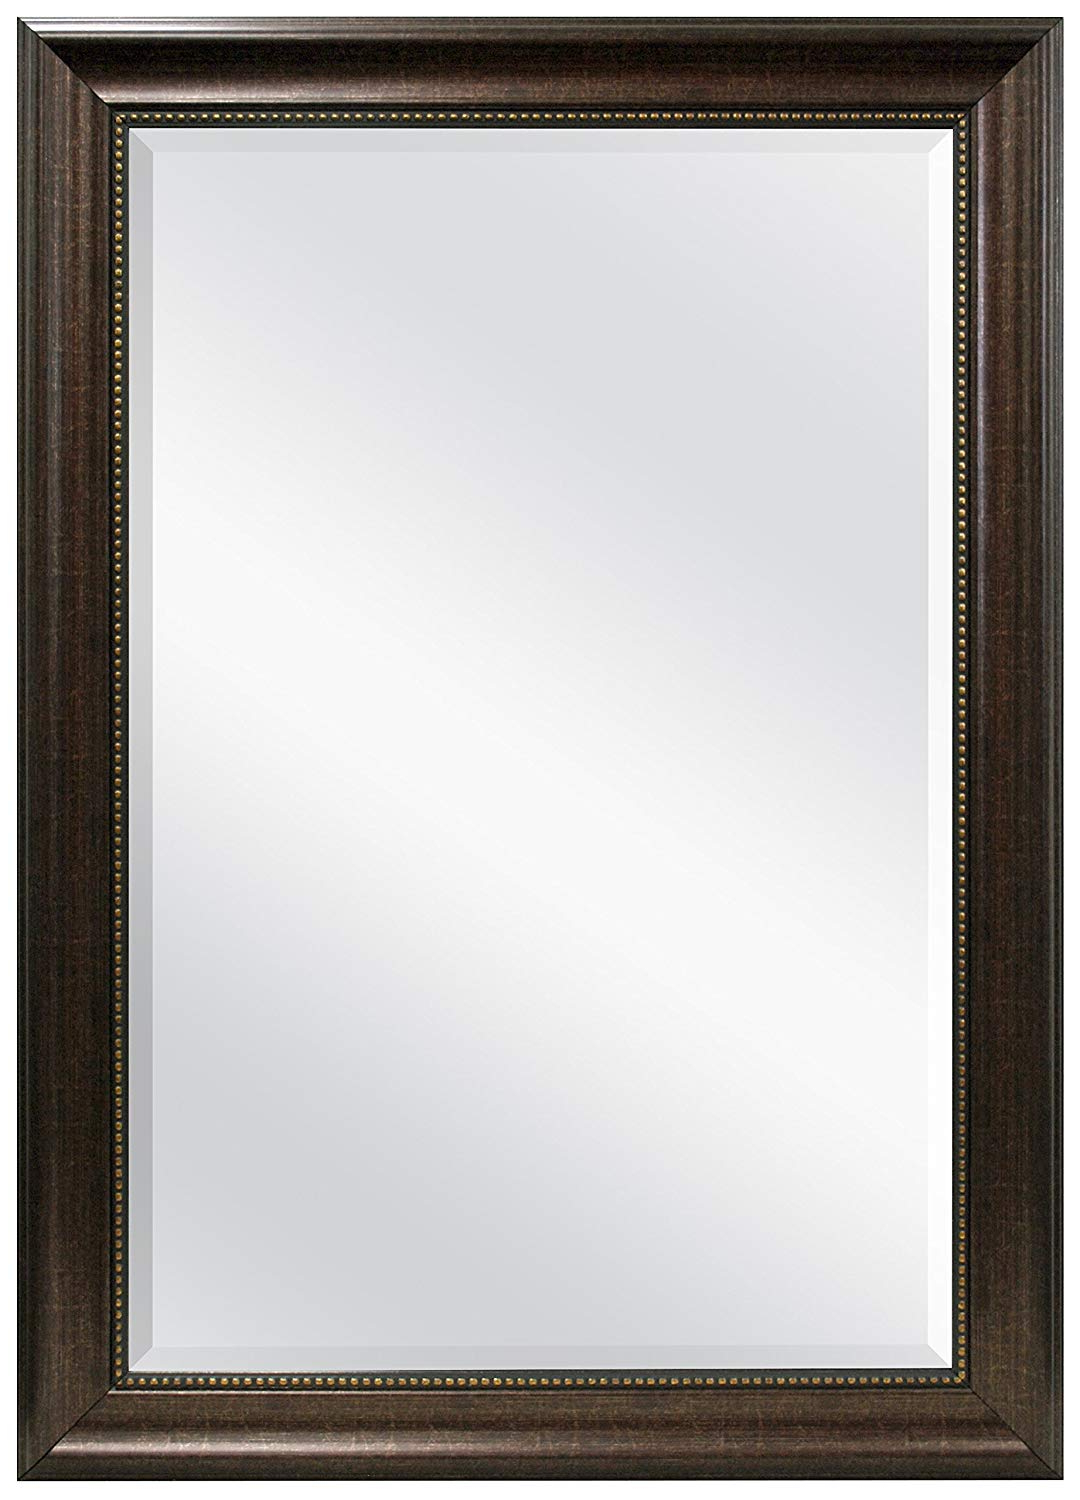 24 X 36 Wall Mirrors For Famous Mcs 24X36 Inch Beaded Rectangular Wall Mirror, 30X42 Inch Overall Size, Bronze (20677) (View 3 of 20)